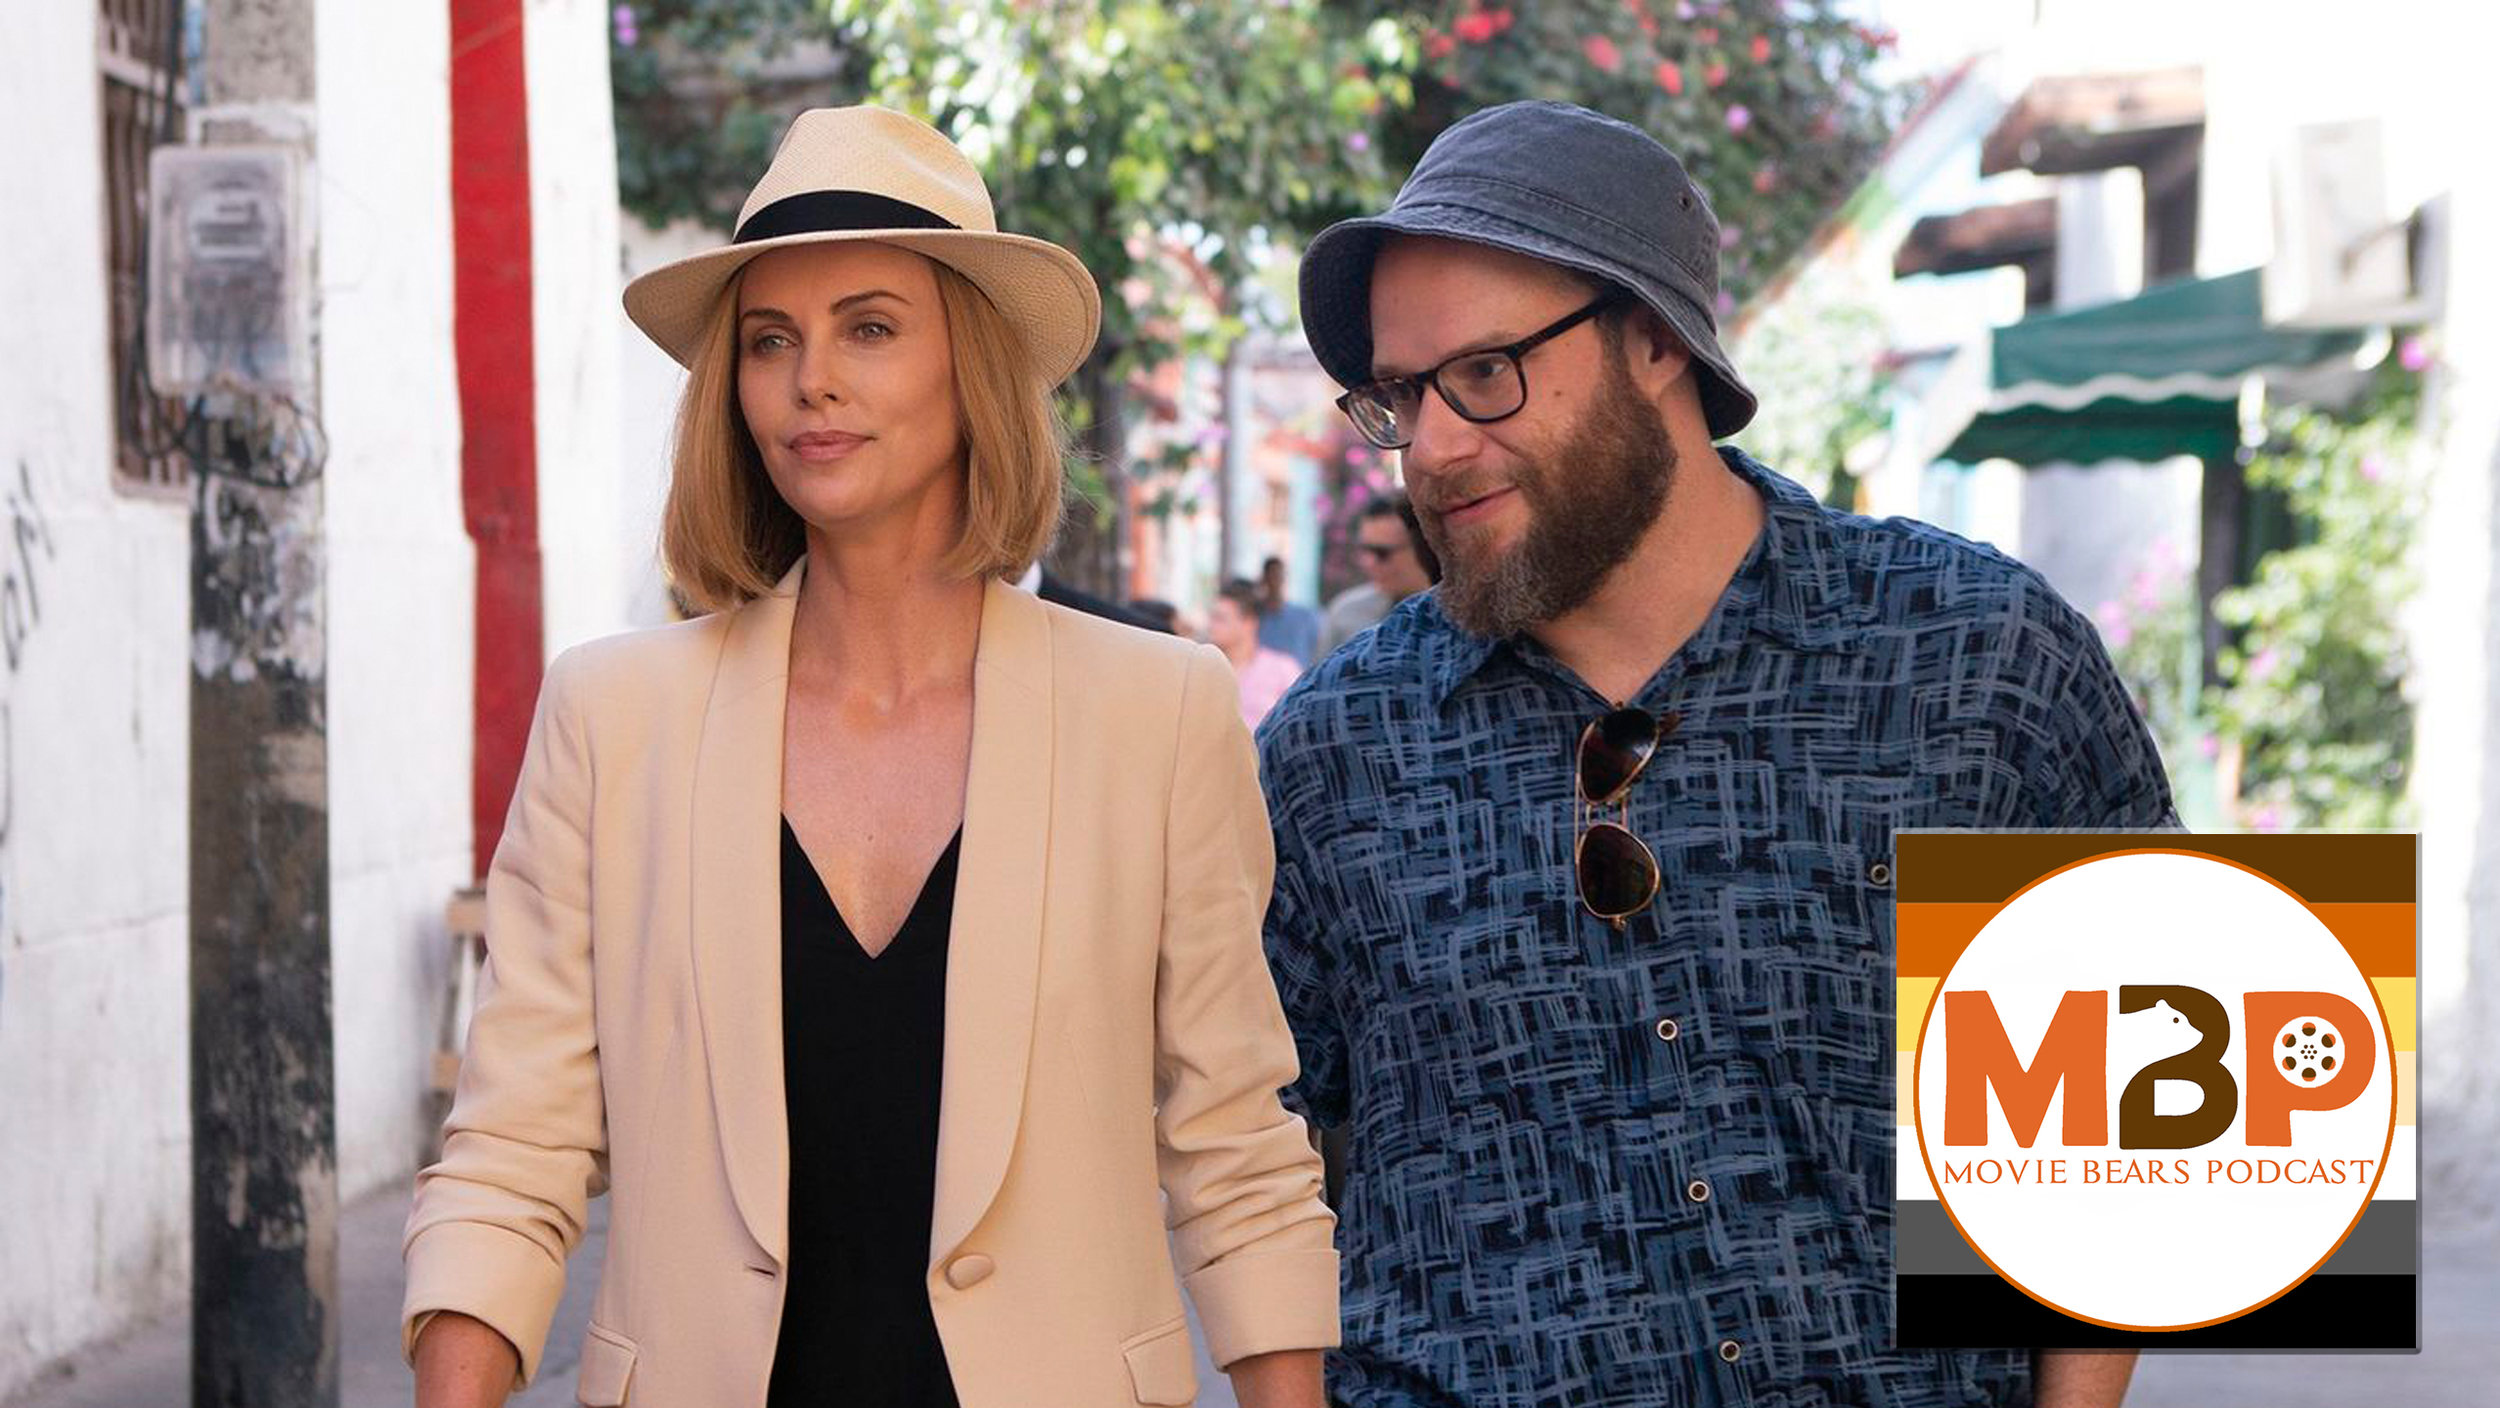 M   BP e3   21   -   'Long Shot'    (5/7/19)    'On this episode we talk about how Seth Rogen and Charlize Theron get romantic - and Presidential - in the new rom-com #LongShot Does this get our vote of comedy approval? Or should you leave this one off the ballot? PLUS, we're discussing a few major news announcements for the Star Wars, Marvel, and Avatar film franchises. Have a listen!